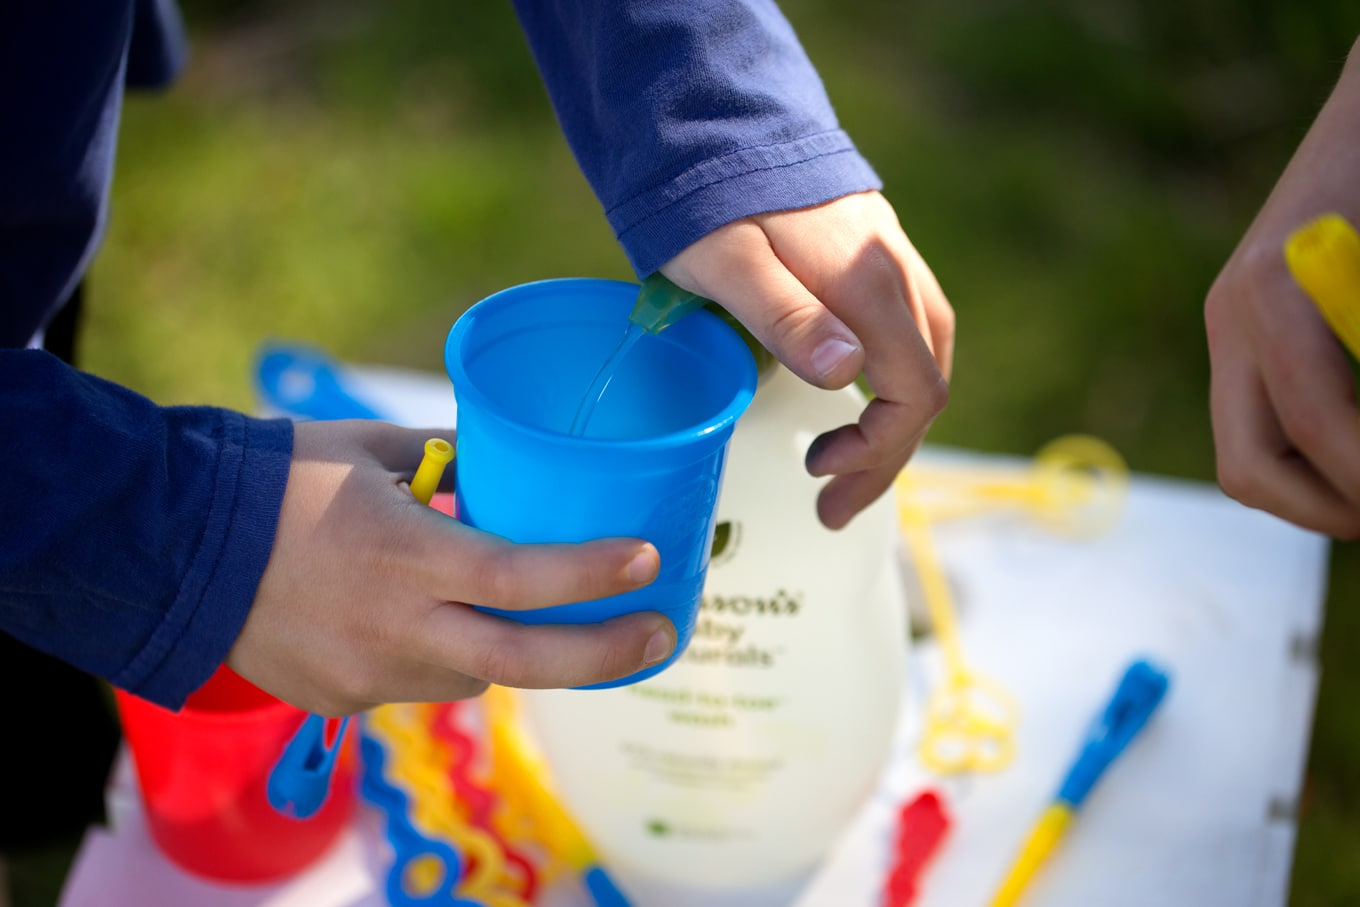 Learn how to turn an old pump bottle into a self-serve bubble refill station for kids. It's eco-friendly, easy, and fun!